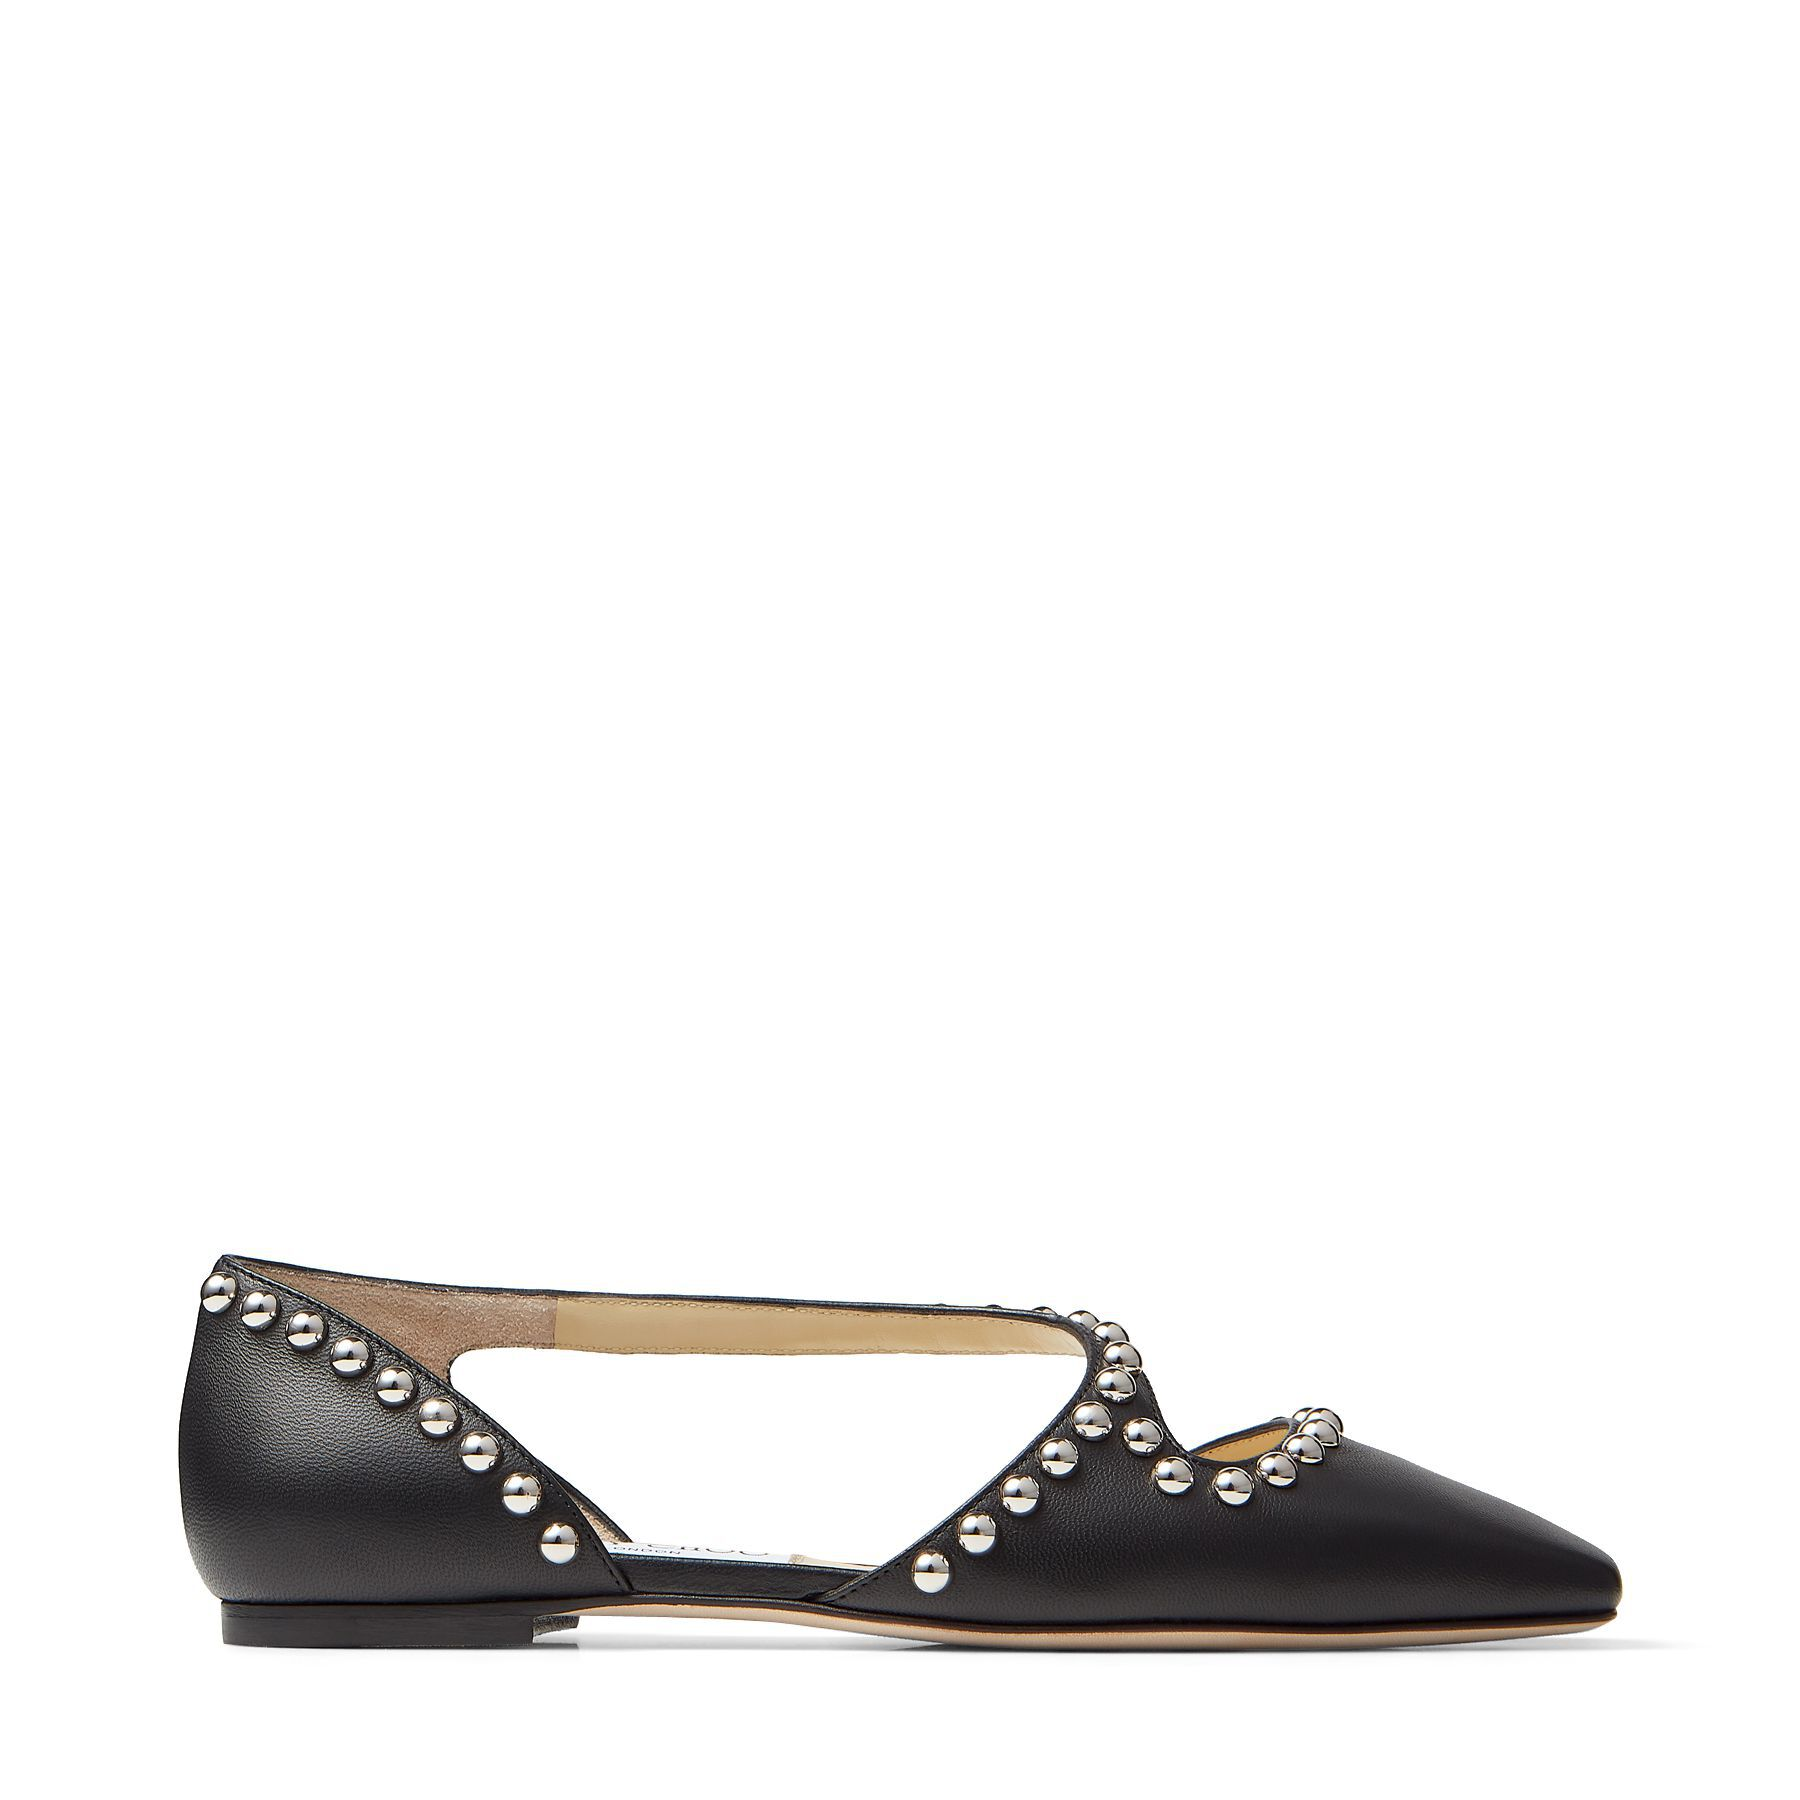 JOEZIE FLAT - Black Nappa Leather Flats with Silver Dome Studs